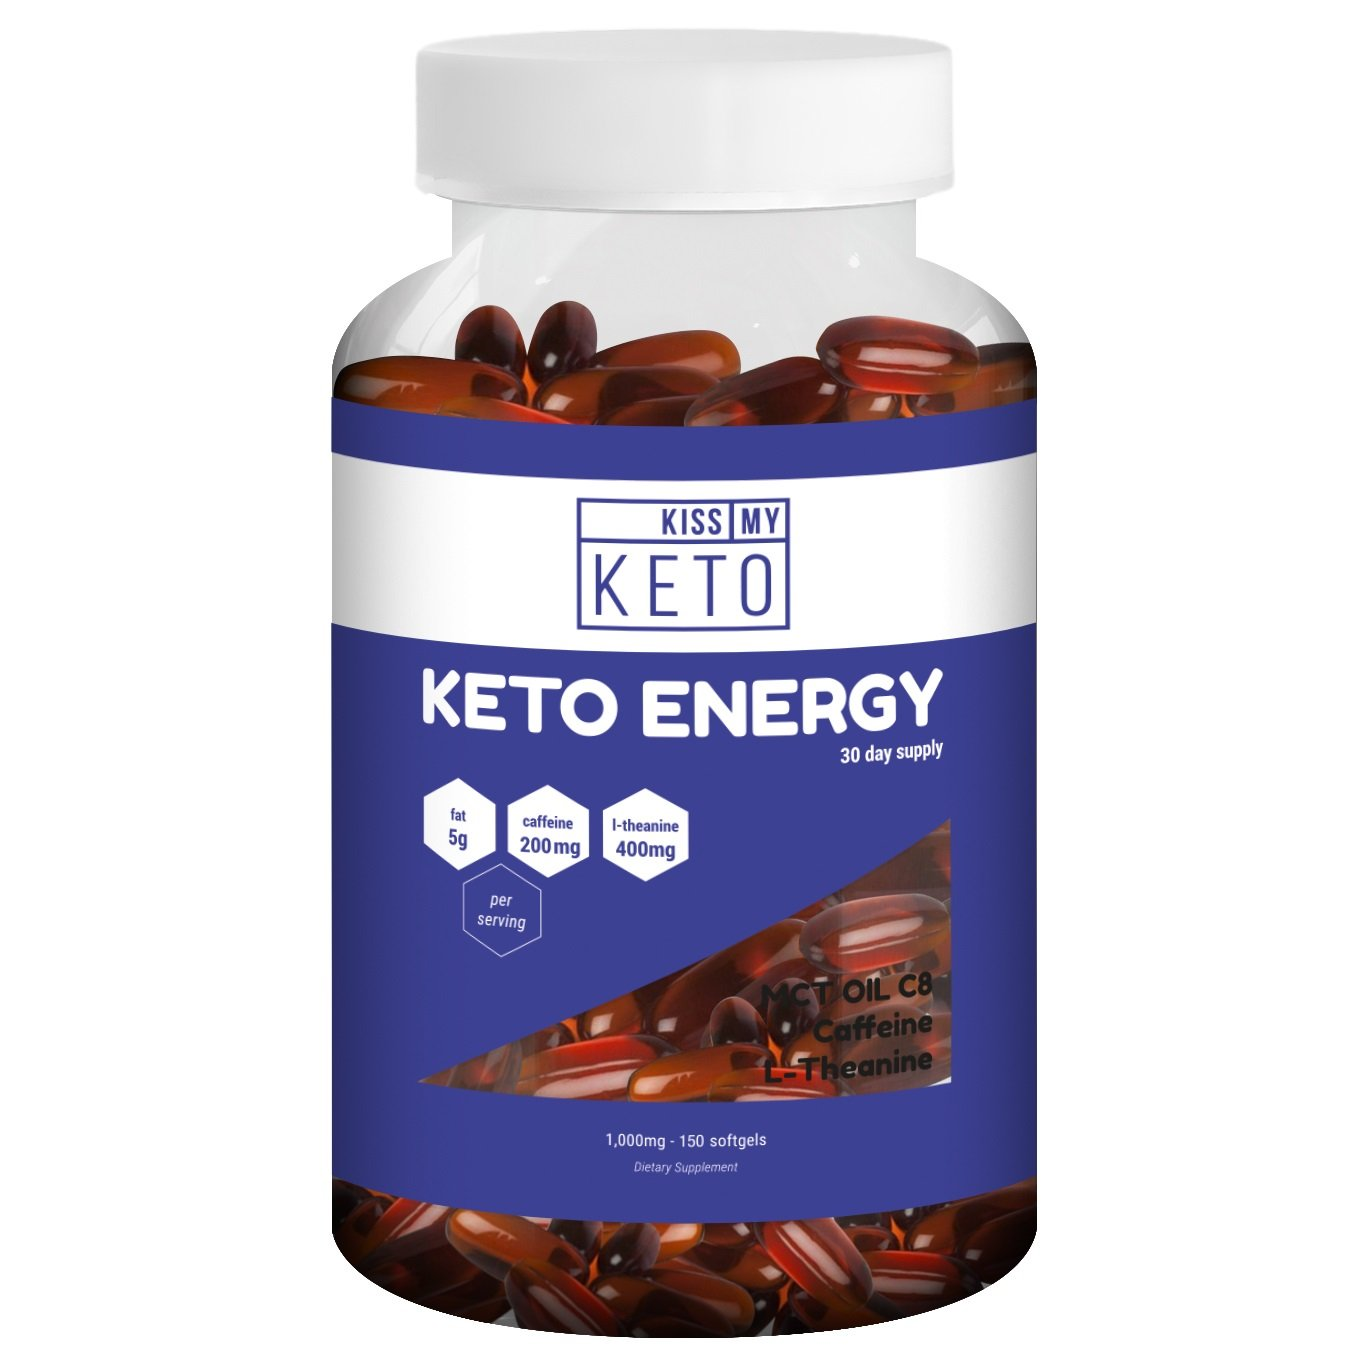 Kiss My Keto Energy Capsules - L Theanine 400mg, C8 MCT Oil Softgels 5000mg, Caffeine 200mg, 150 Count, Increase Energy, Mental Focus, Mood, Alertness. MCT's On The Go. Easy to Digest. 30 Day Supply